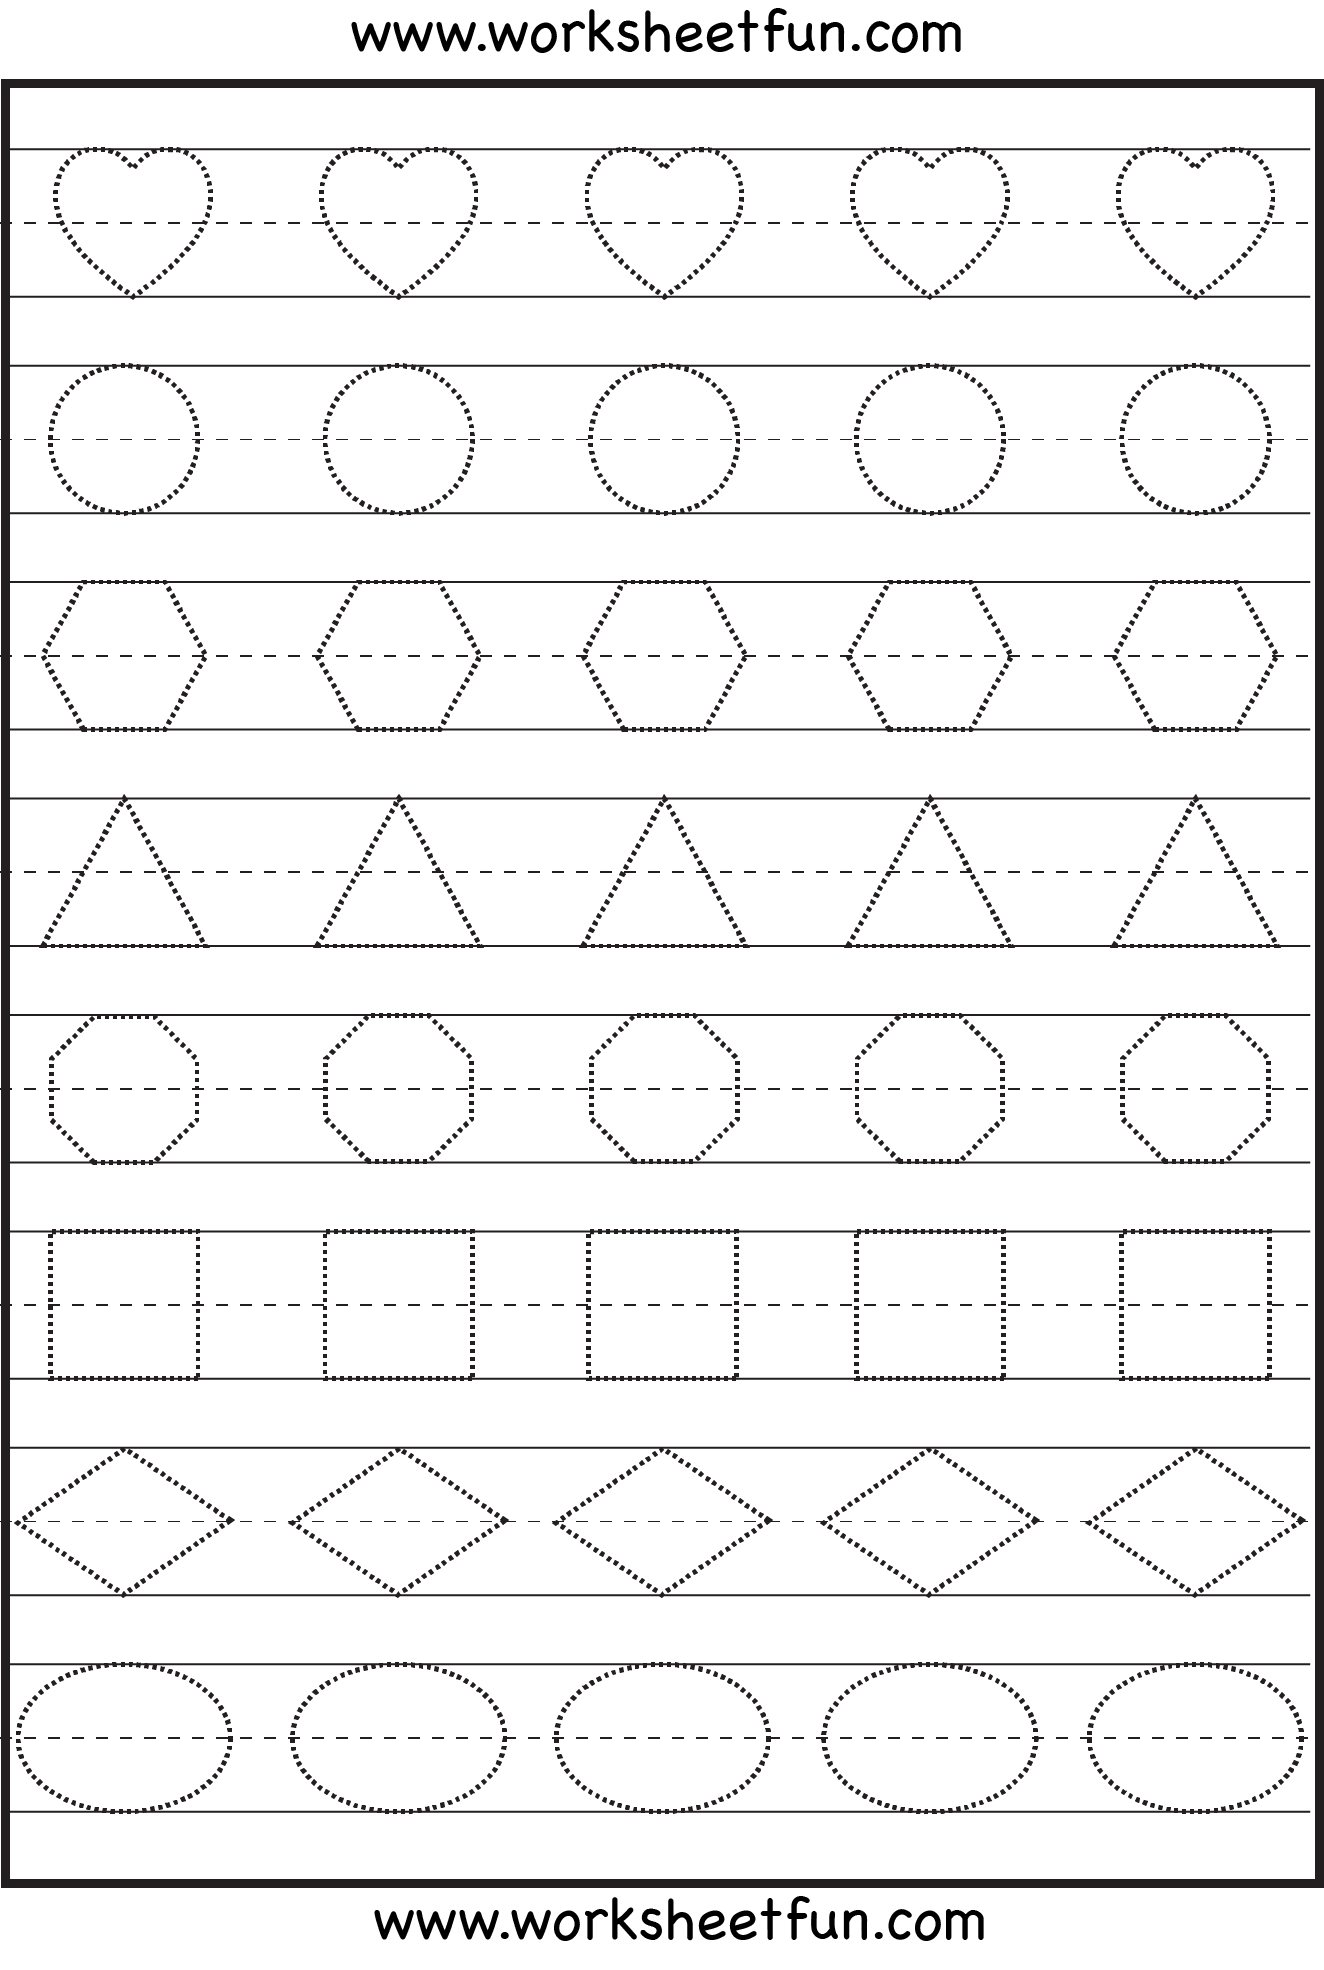 5 Images of Free Printable Preschool Activity Worksheets